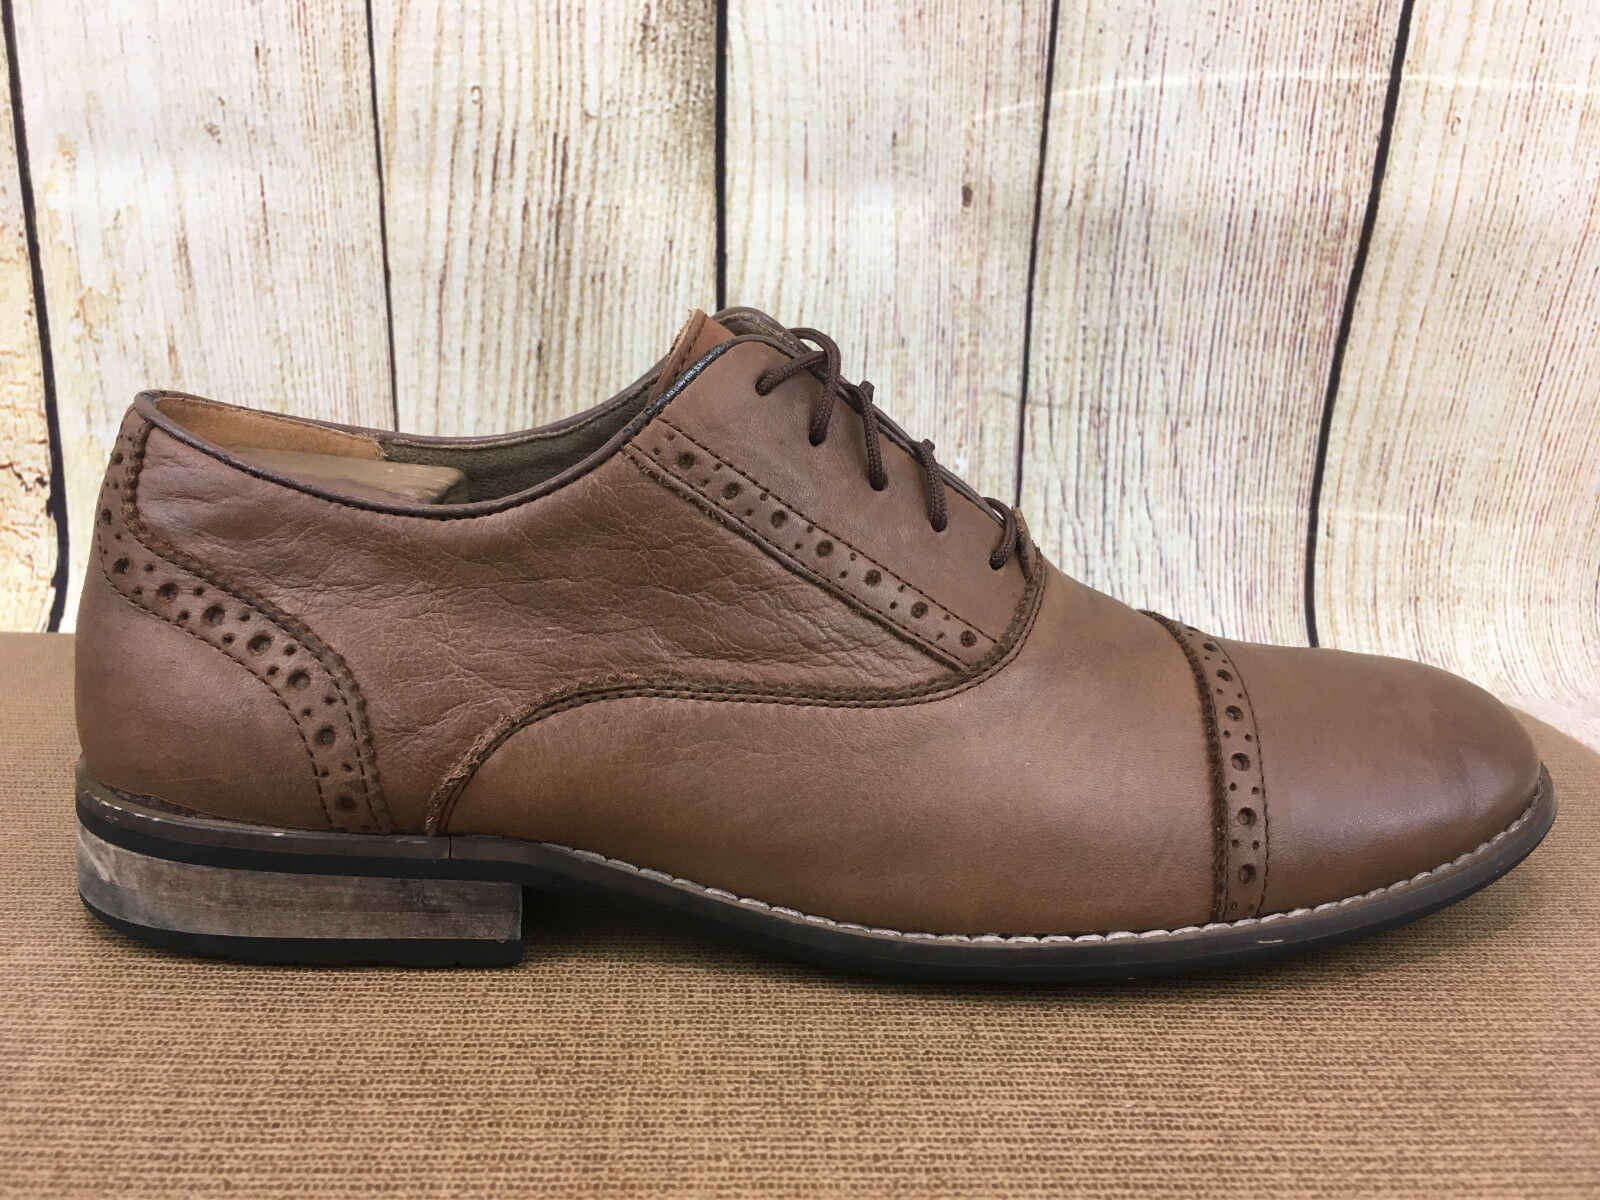 Steve Madden Mens Size Germain Round Toe Oxford Shoe Size Mens 10 G34(4 bc737a